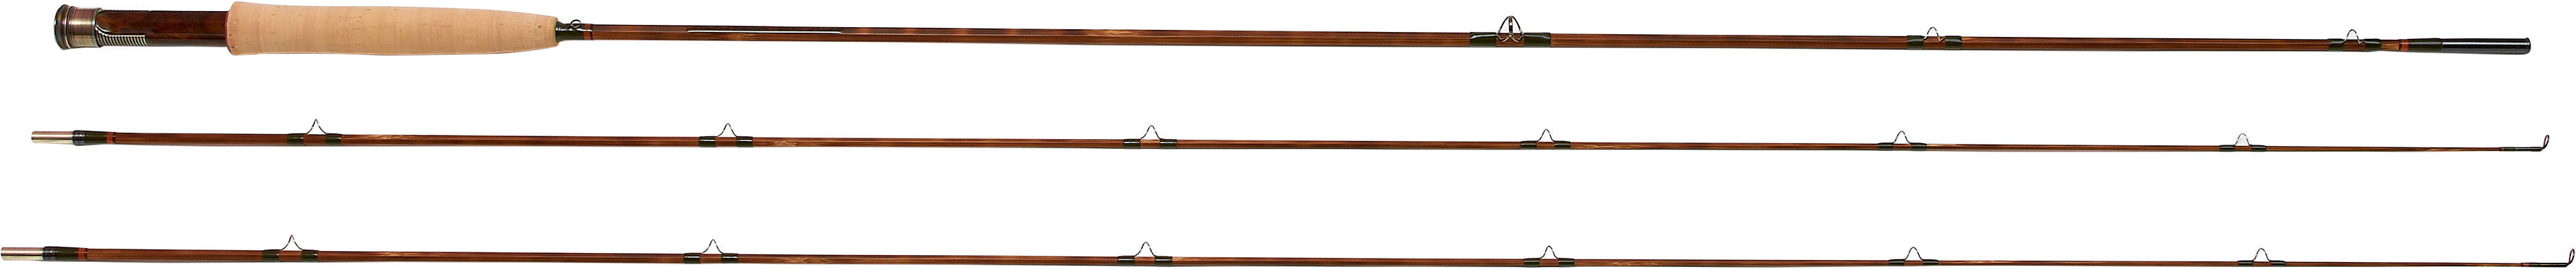 ball zinger. the thomas \u0026 x ball and buck rod is a limited edition made from pre-embargo era bamboo in 8 ft 5 wt makeup includes two tips with signature zinger l